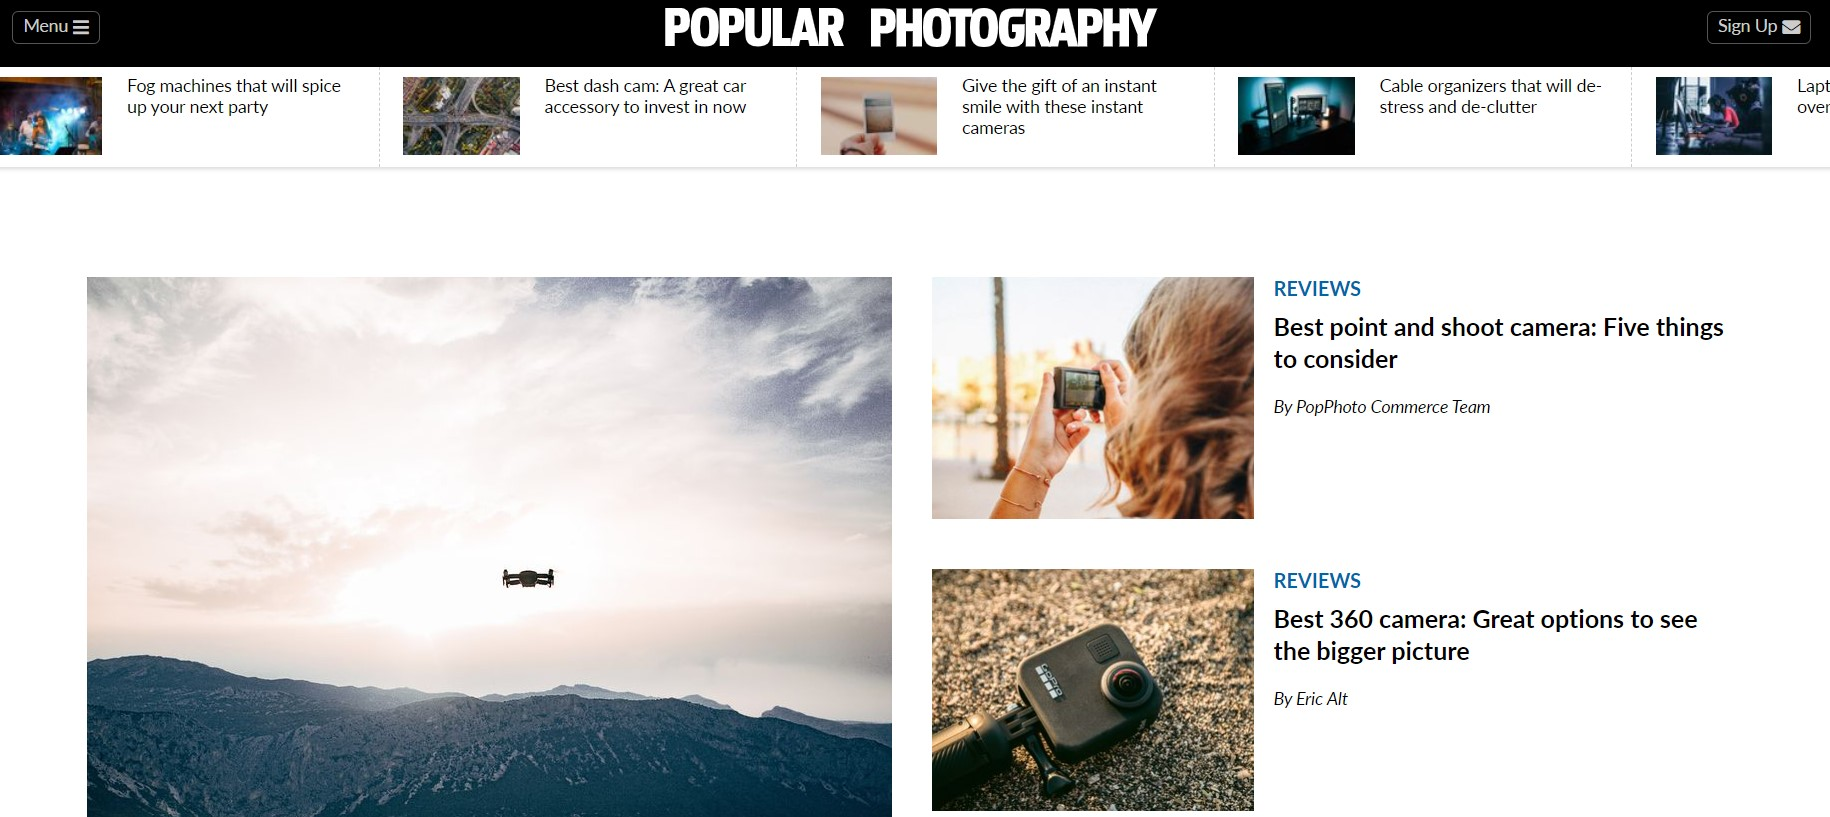 The Popular Photography website